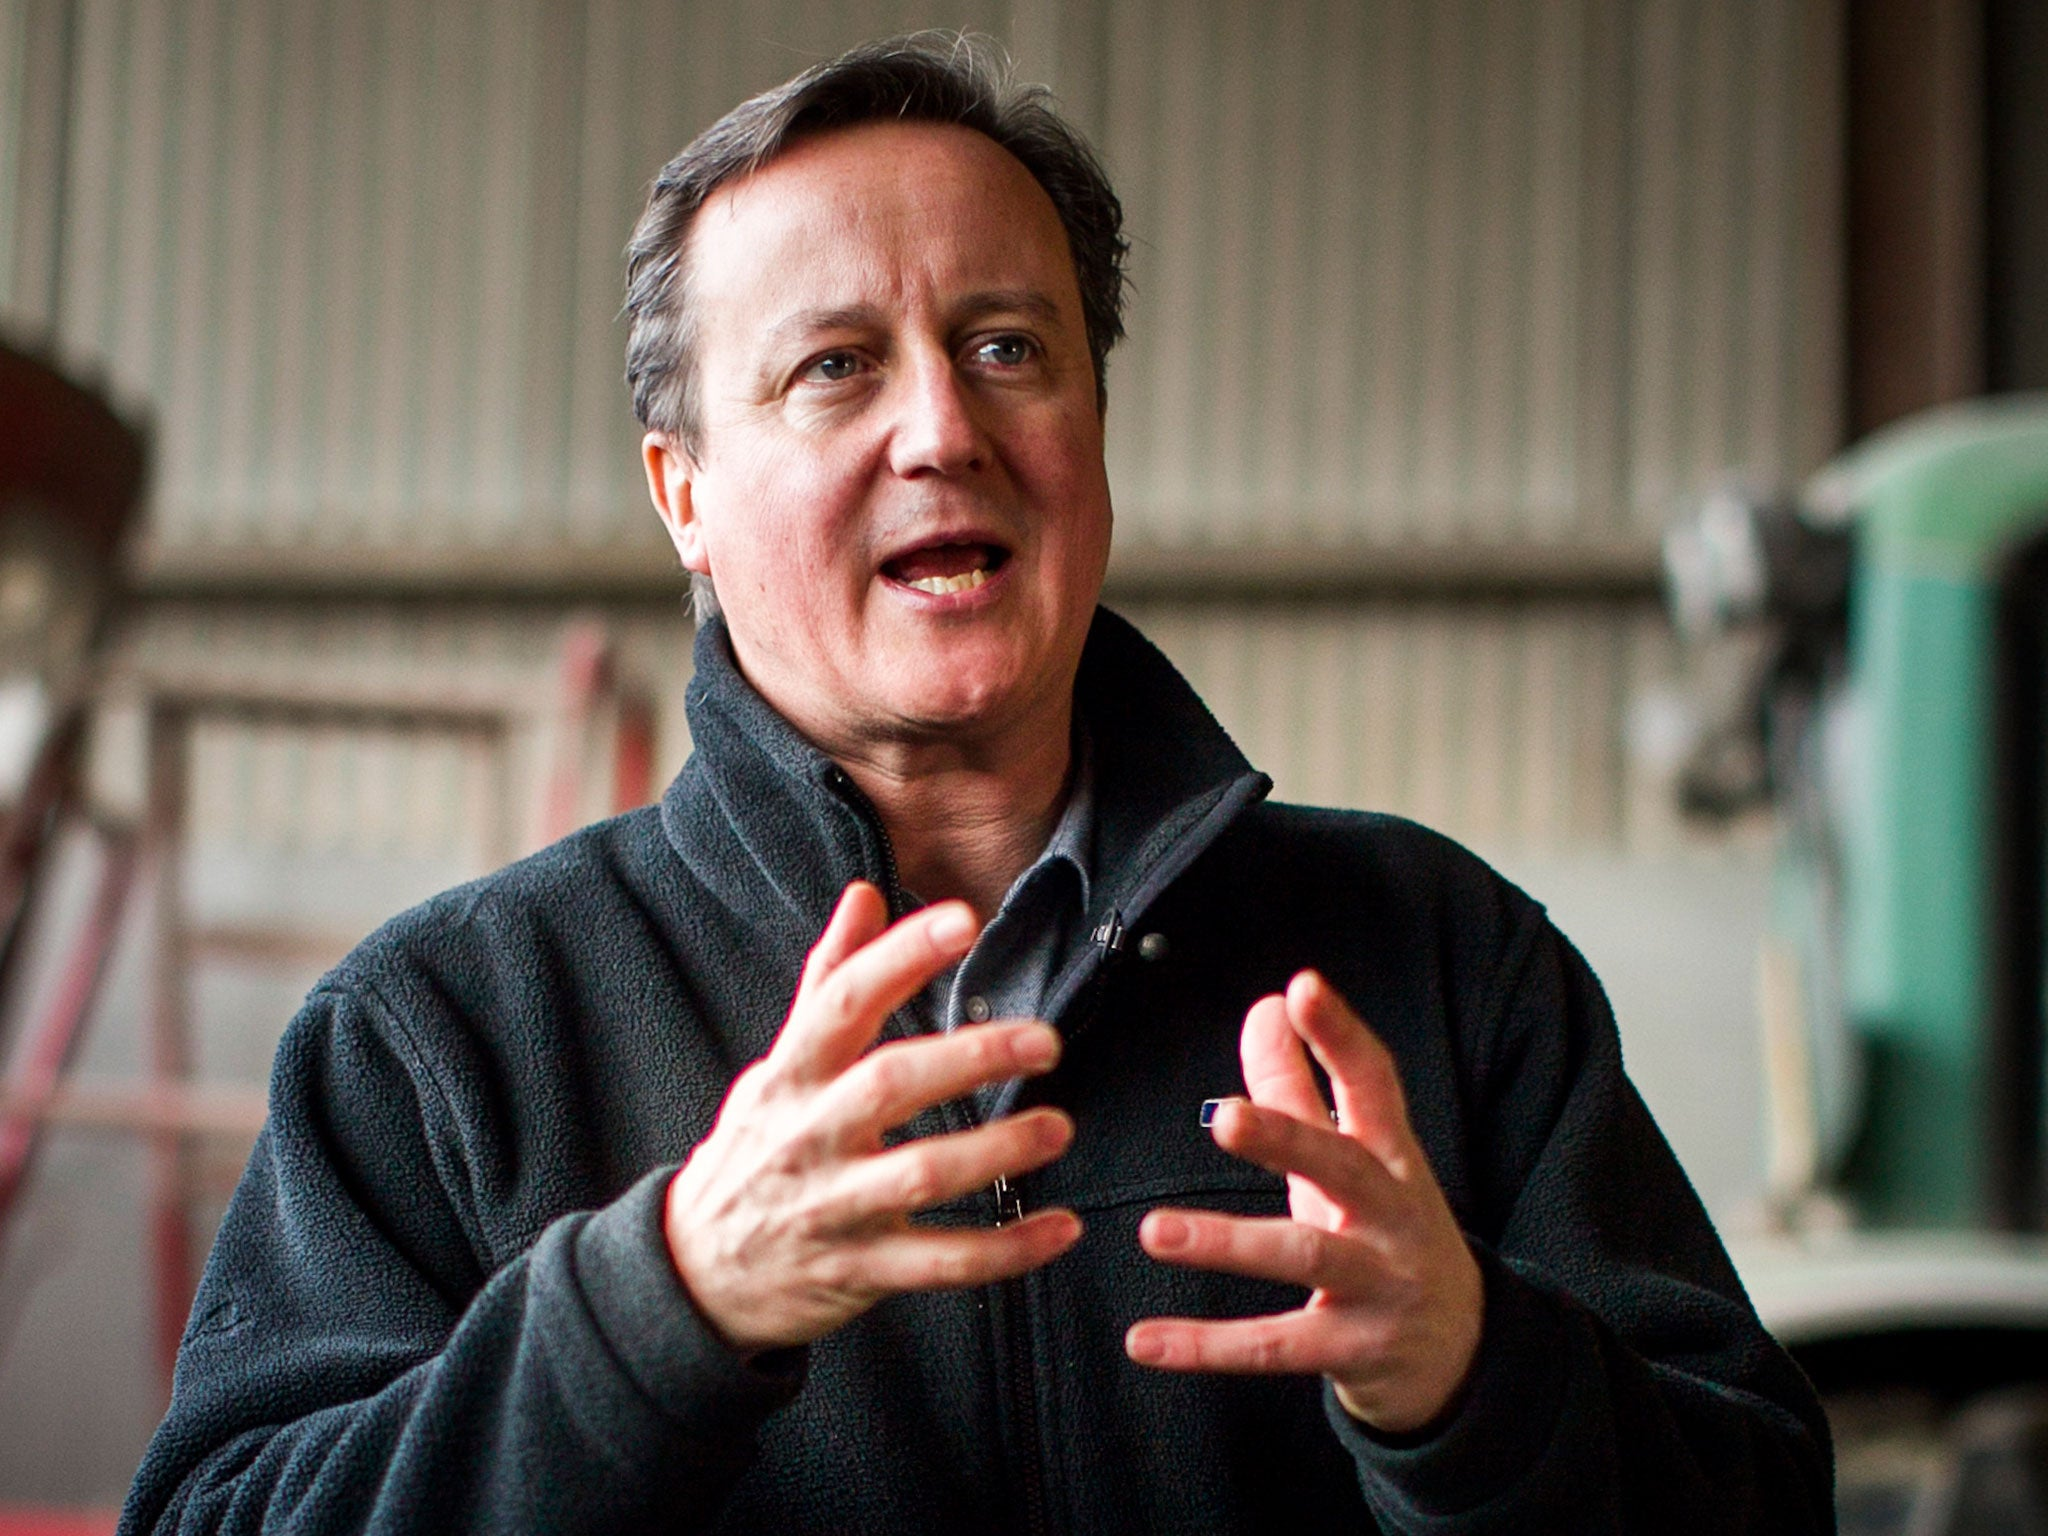 david cameron hasn u0027t benefited from his father u0027s offshore trust